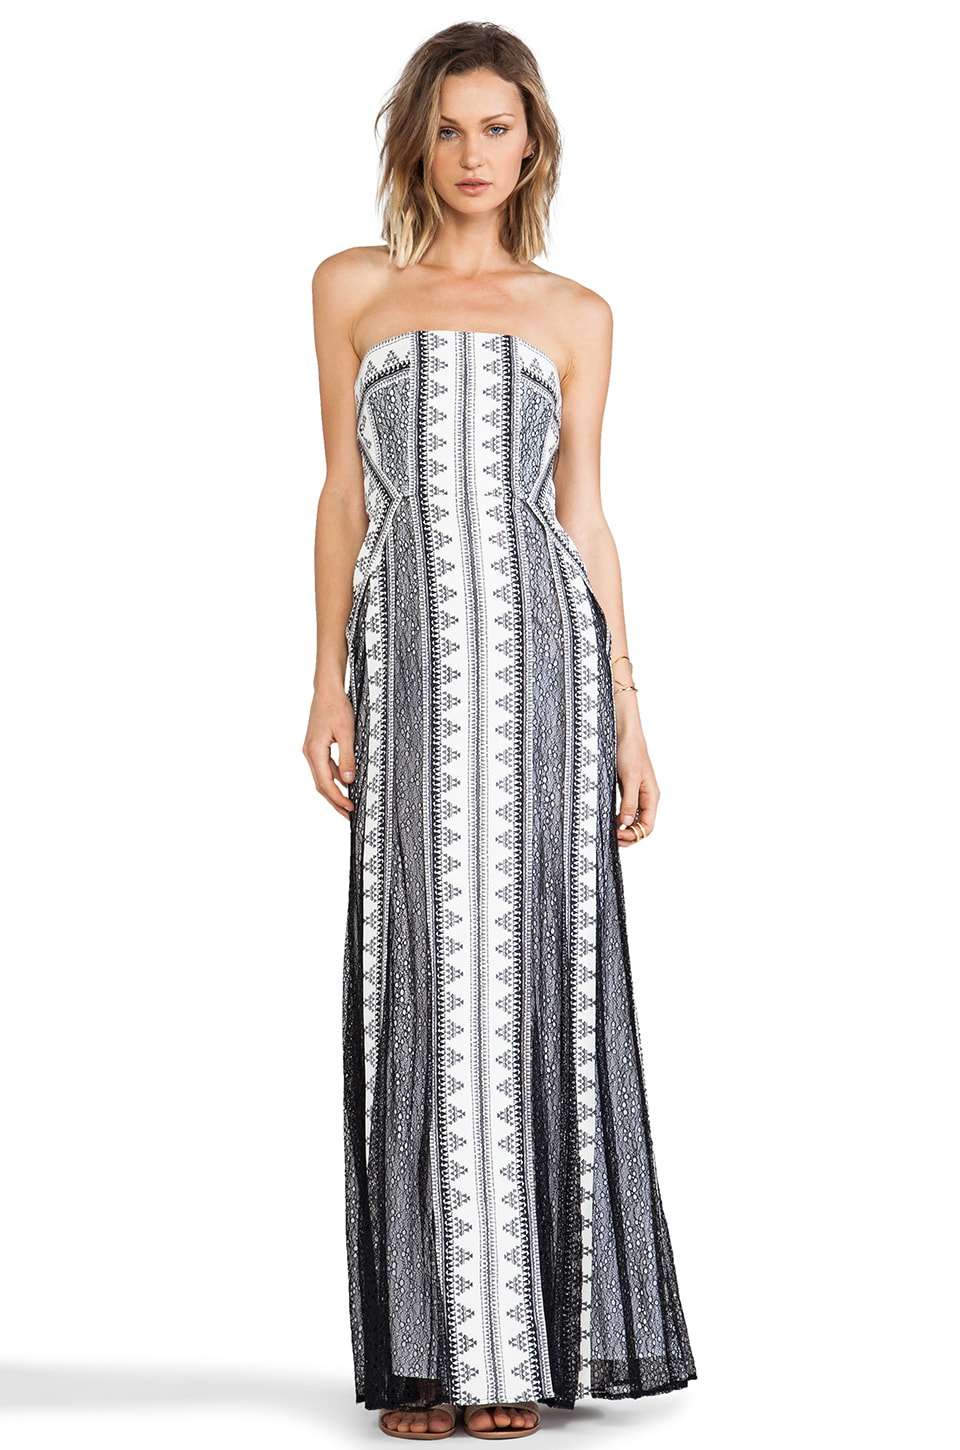 BCBGMAXAZRIA Kia Dress in Off White Black Combo